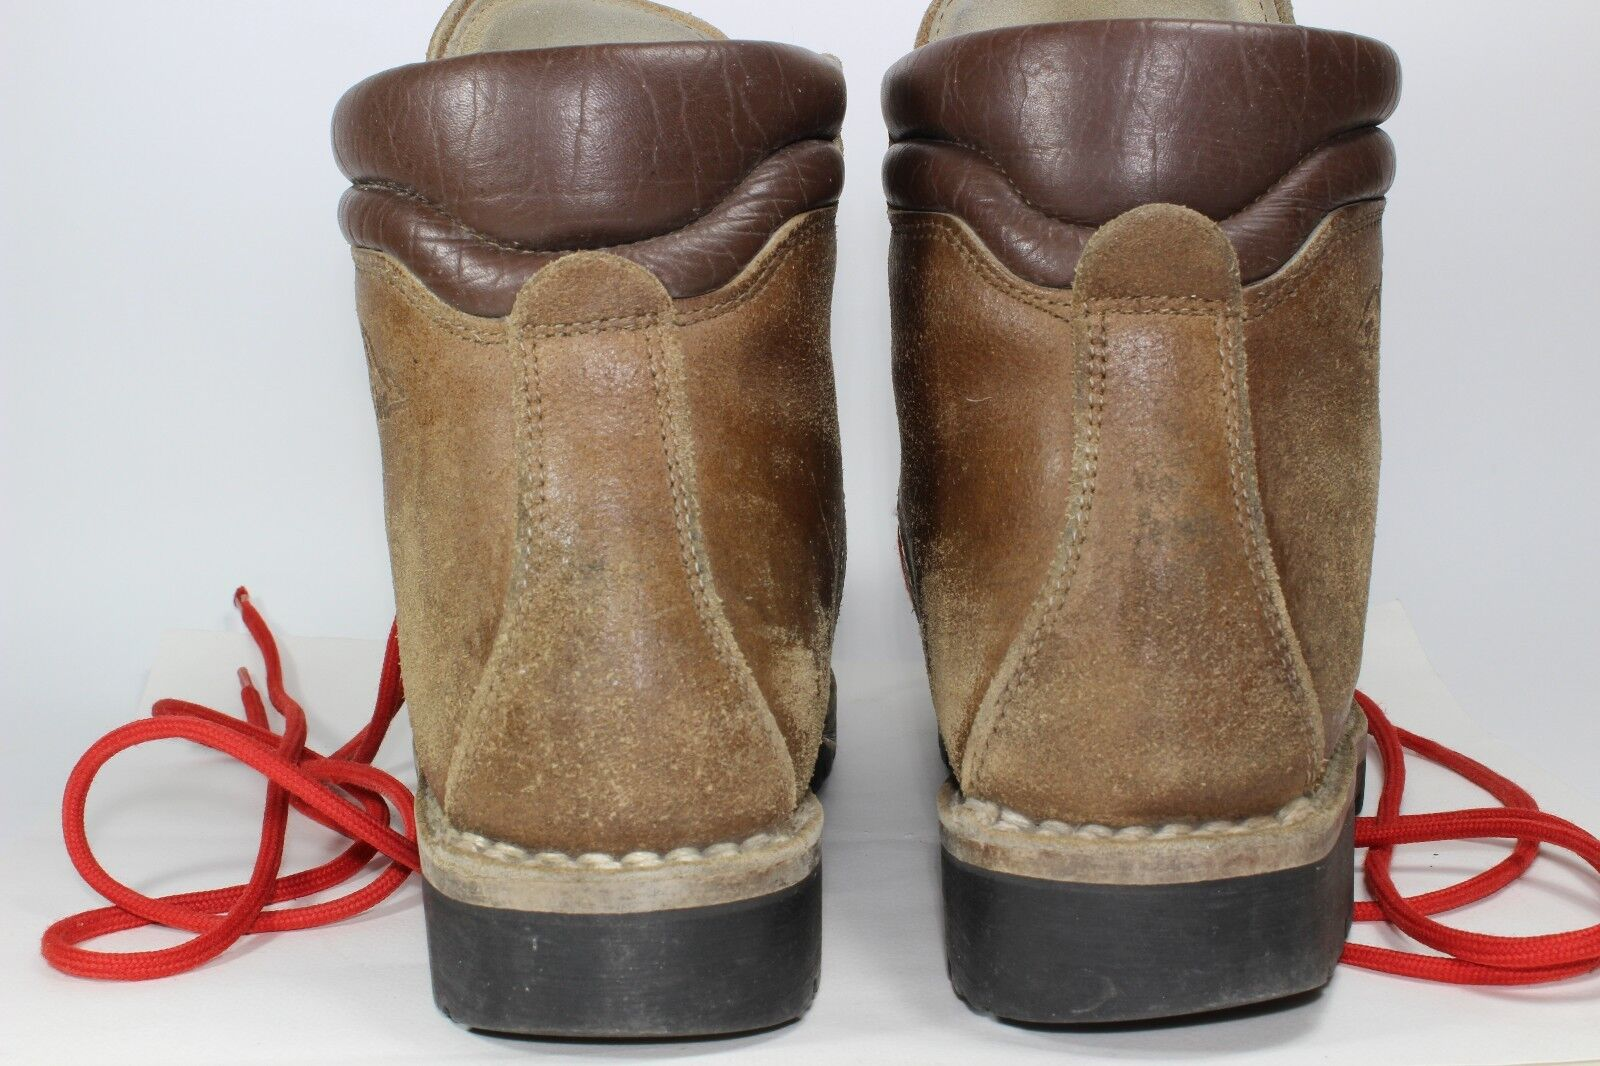 19663d30d78c ... Alpin Hiking Hiking Hiking Mountaineering Leather Boots Vintage Rare  Red Line Euro size 38 463920 ...